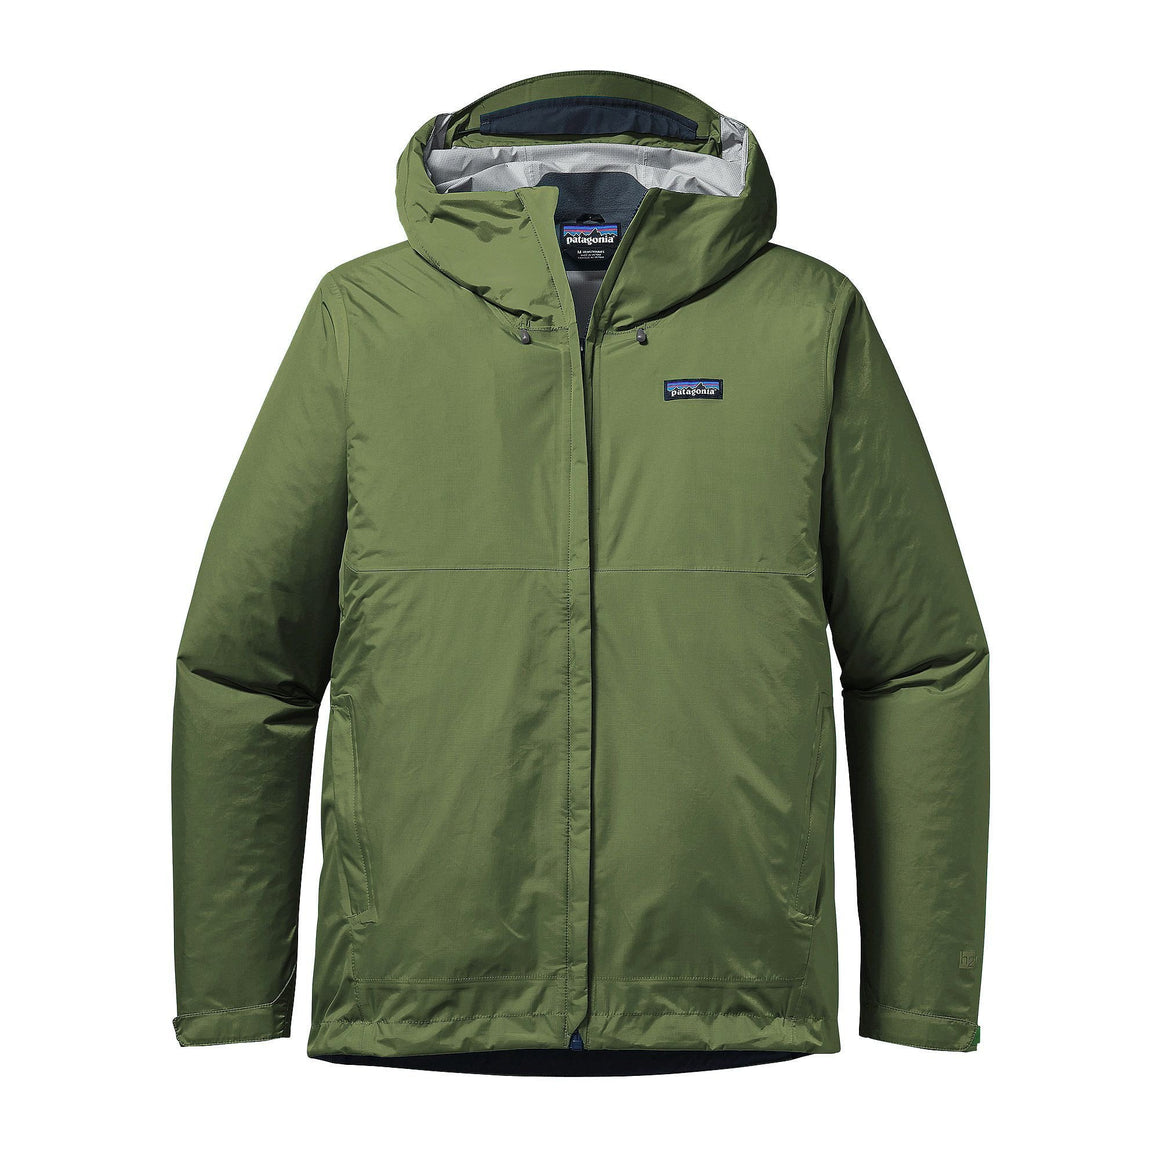 Mens Torrentshell Waterproof Jacket - Buffalo Green